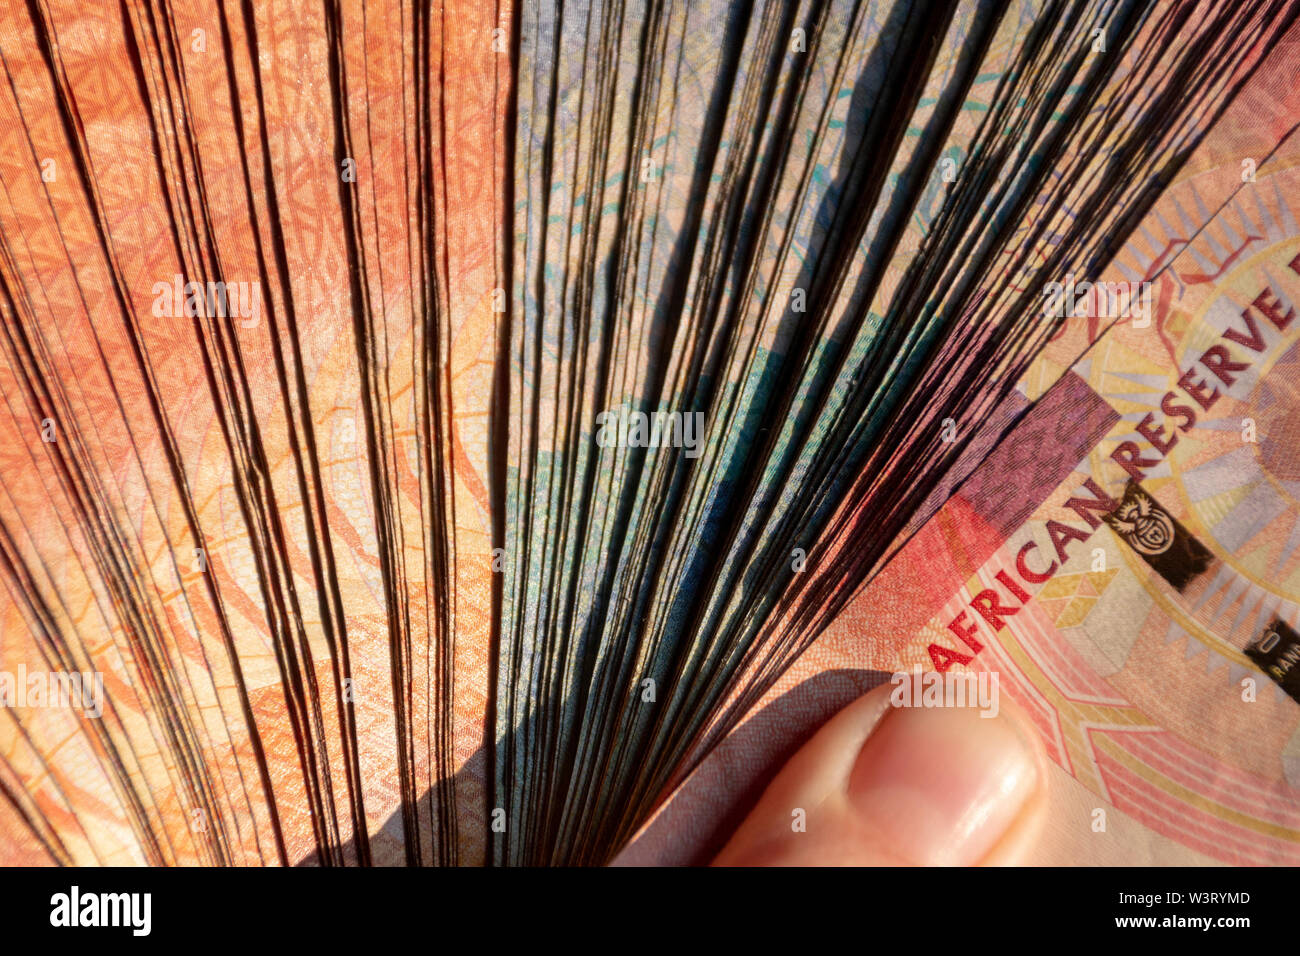 A close up of a pile of two hundred, one hundred and fifty rand sound african notes all spread out in a pile - Stock Image